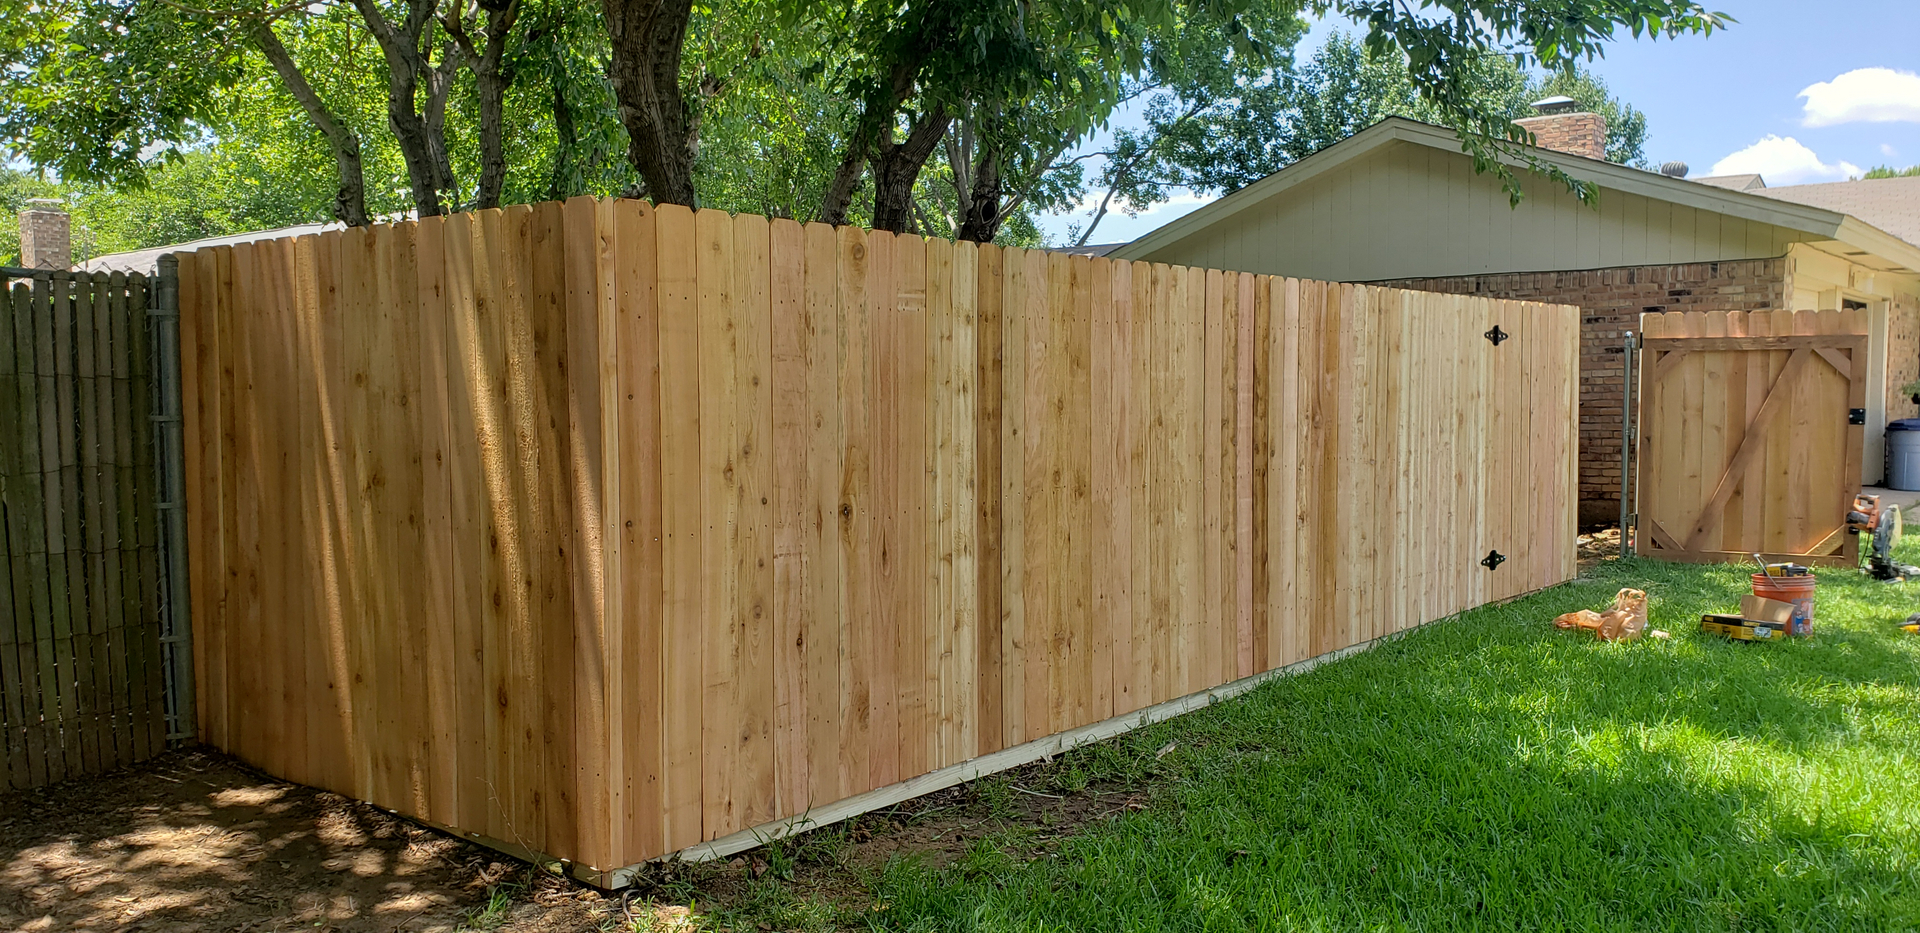 6ft Side-by-Side Cedar wood fence